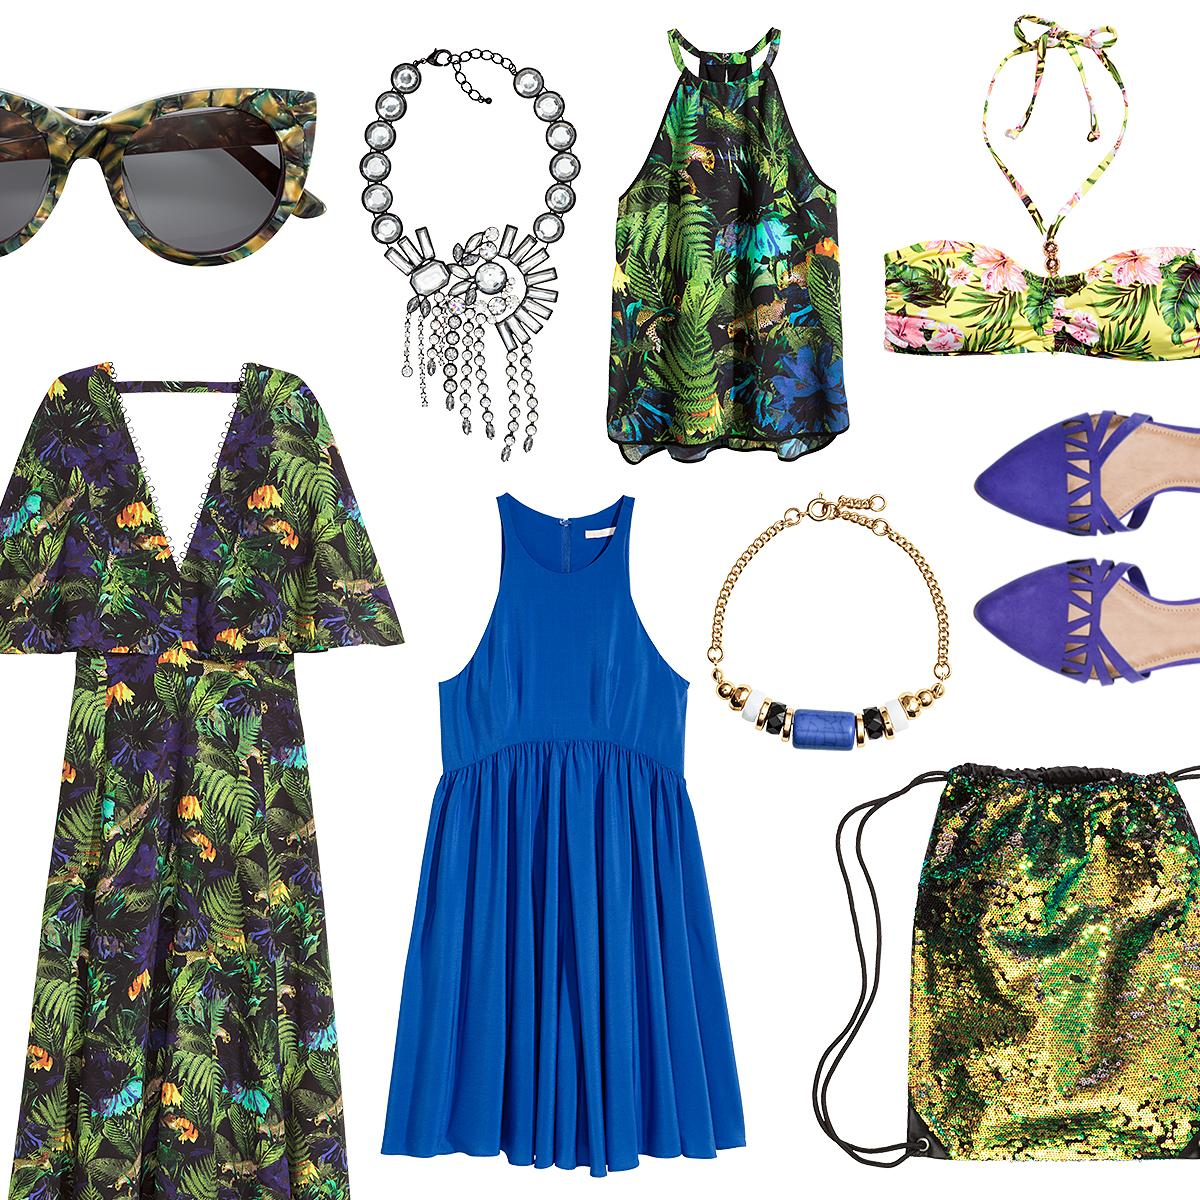 Welcome to the jungle! Fearlessly explore summer's richest hues & lushest prints. http://t.co/xPD6Yvd1rb #HMFashion http://t.co/pNZs0Qt1kH